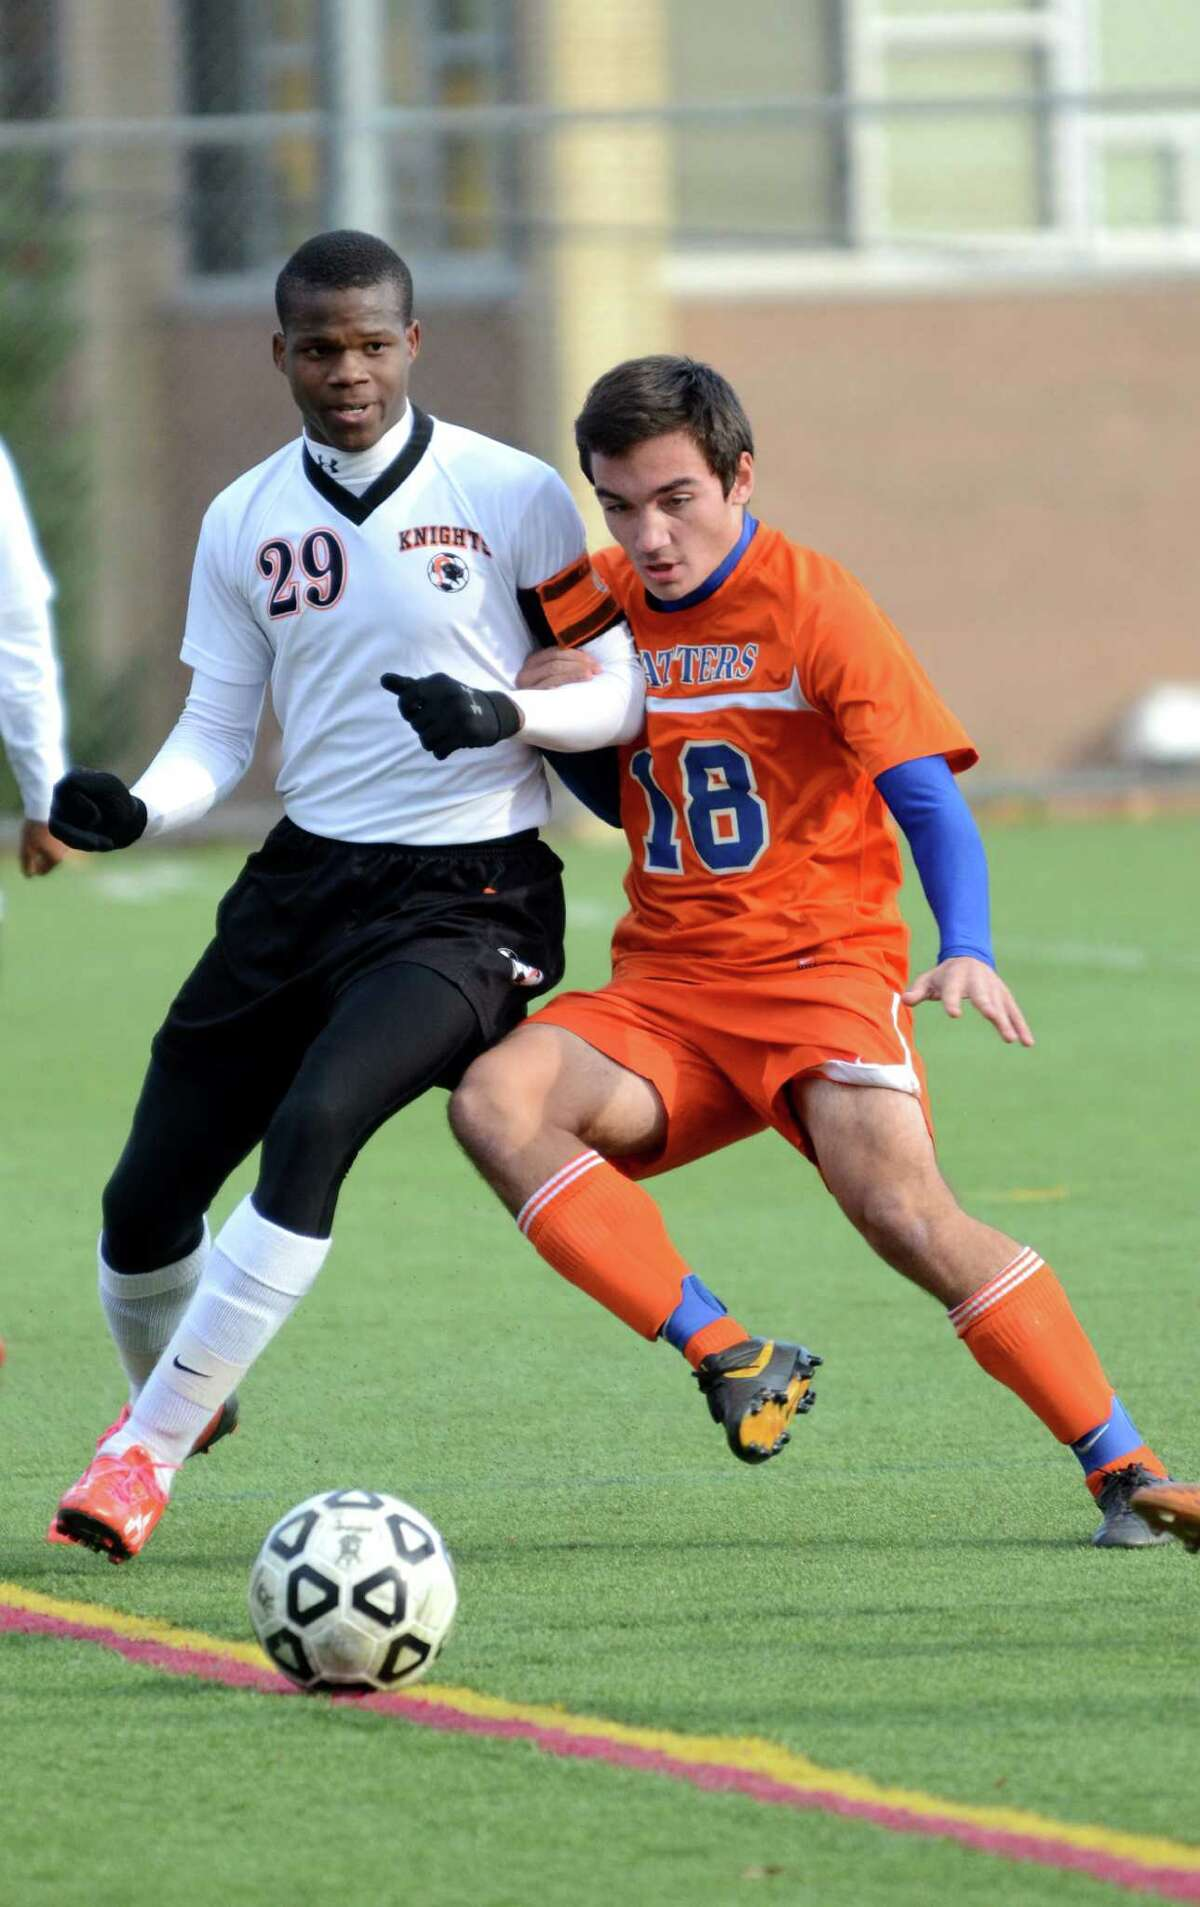 Stamford's Marc Guirand (29) and Danbury's Matthew Alvarez (18) battle for control of the ball during the Class LL boys soccer game at Stamford High School on Tuesday, Nov. 5, 2013.